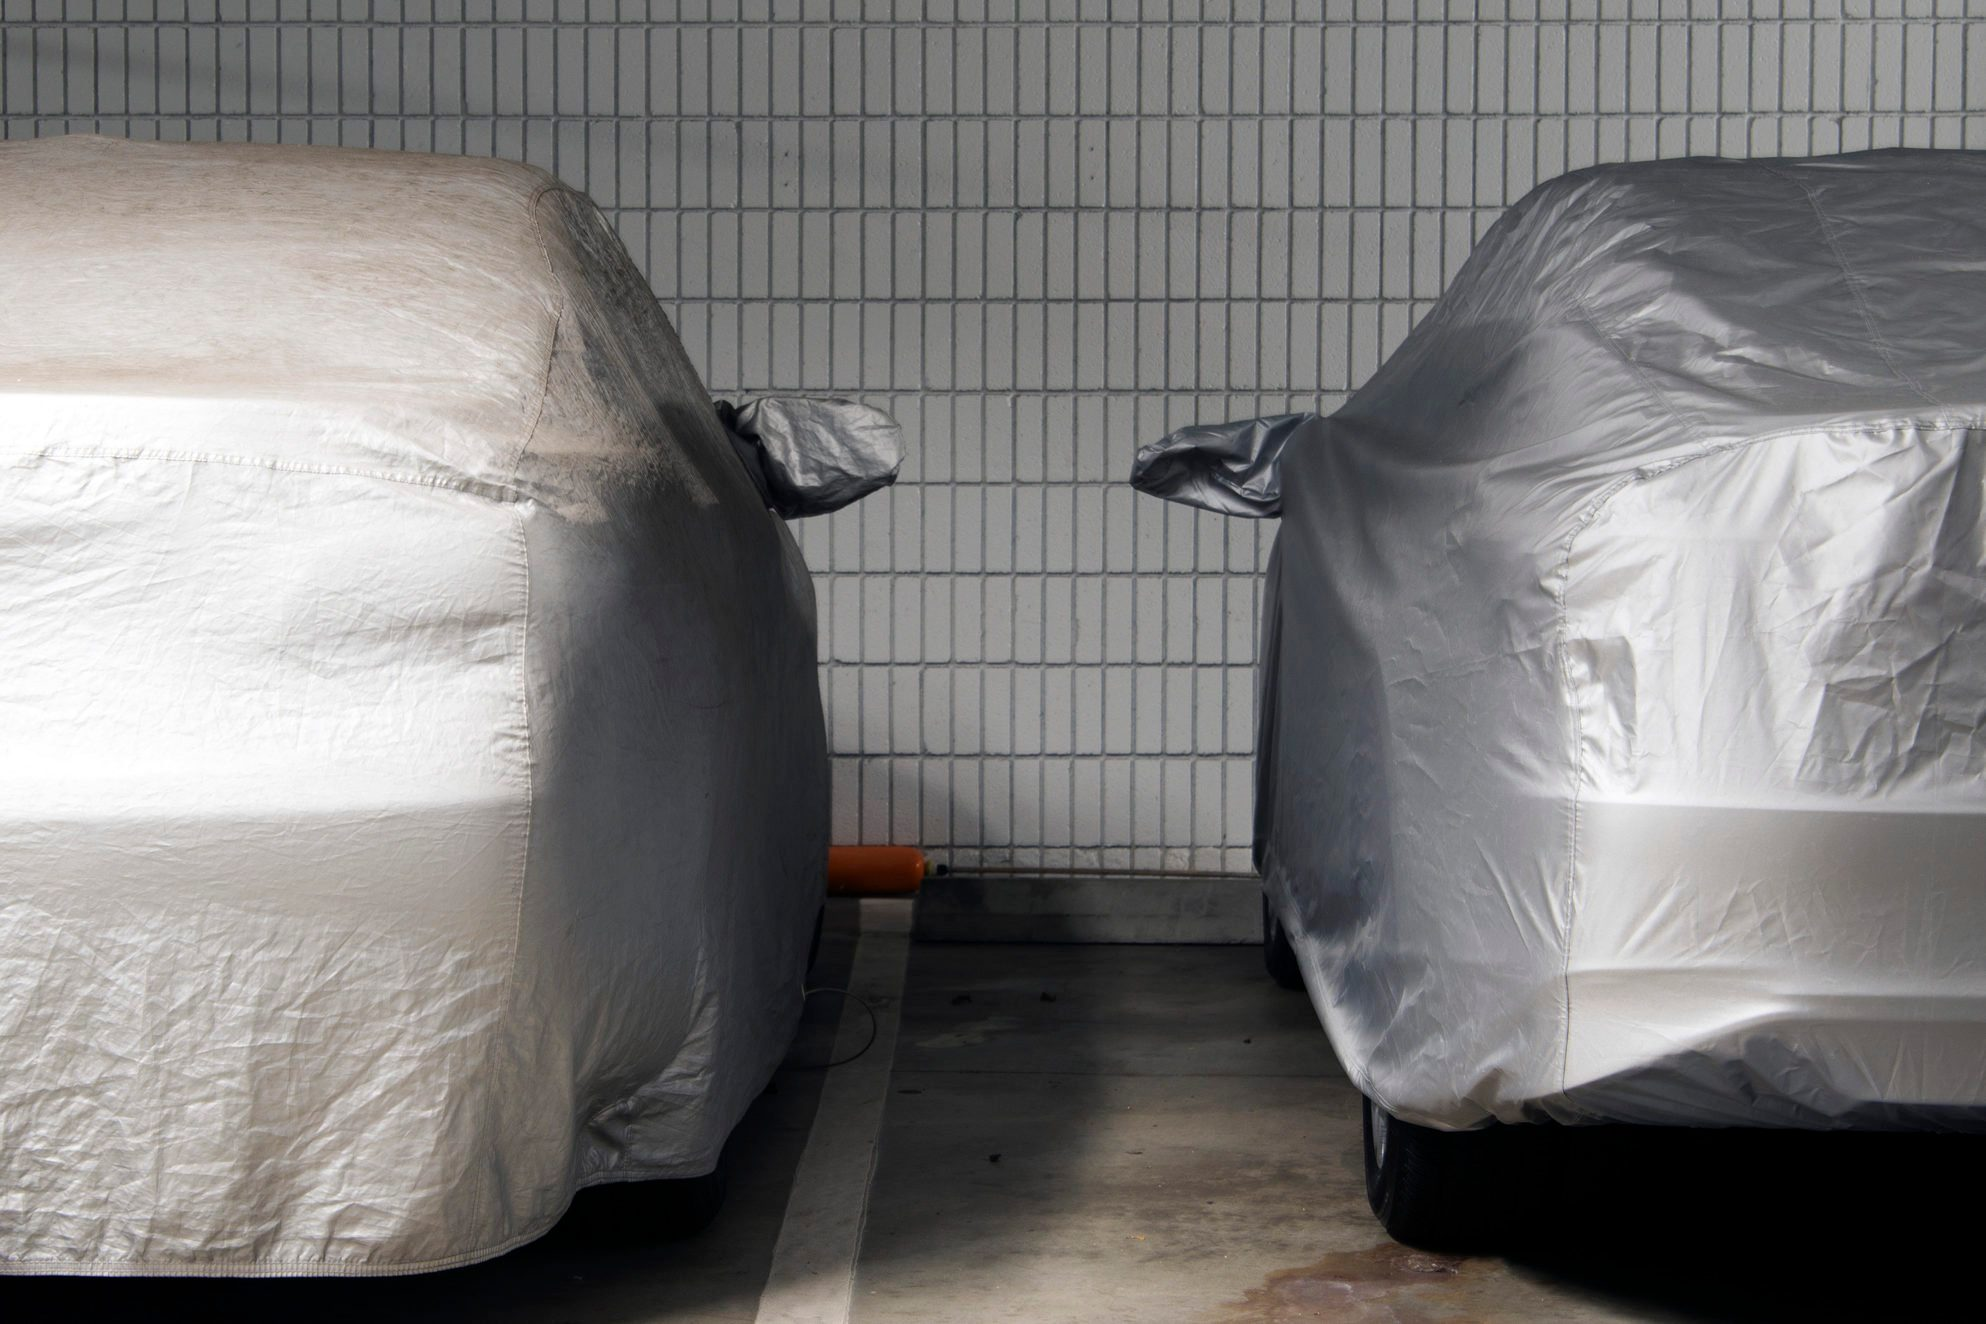 Close-Up Of Covered Car In Parking Garage